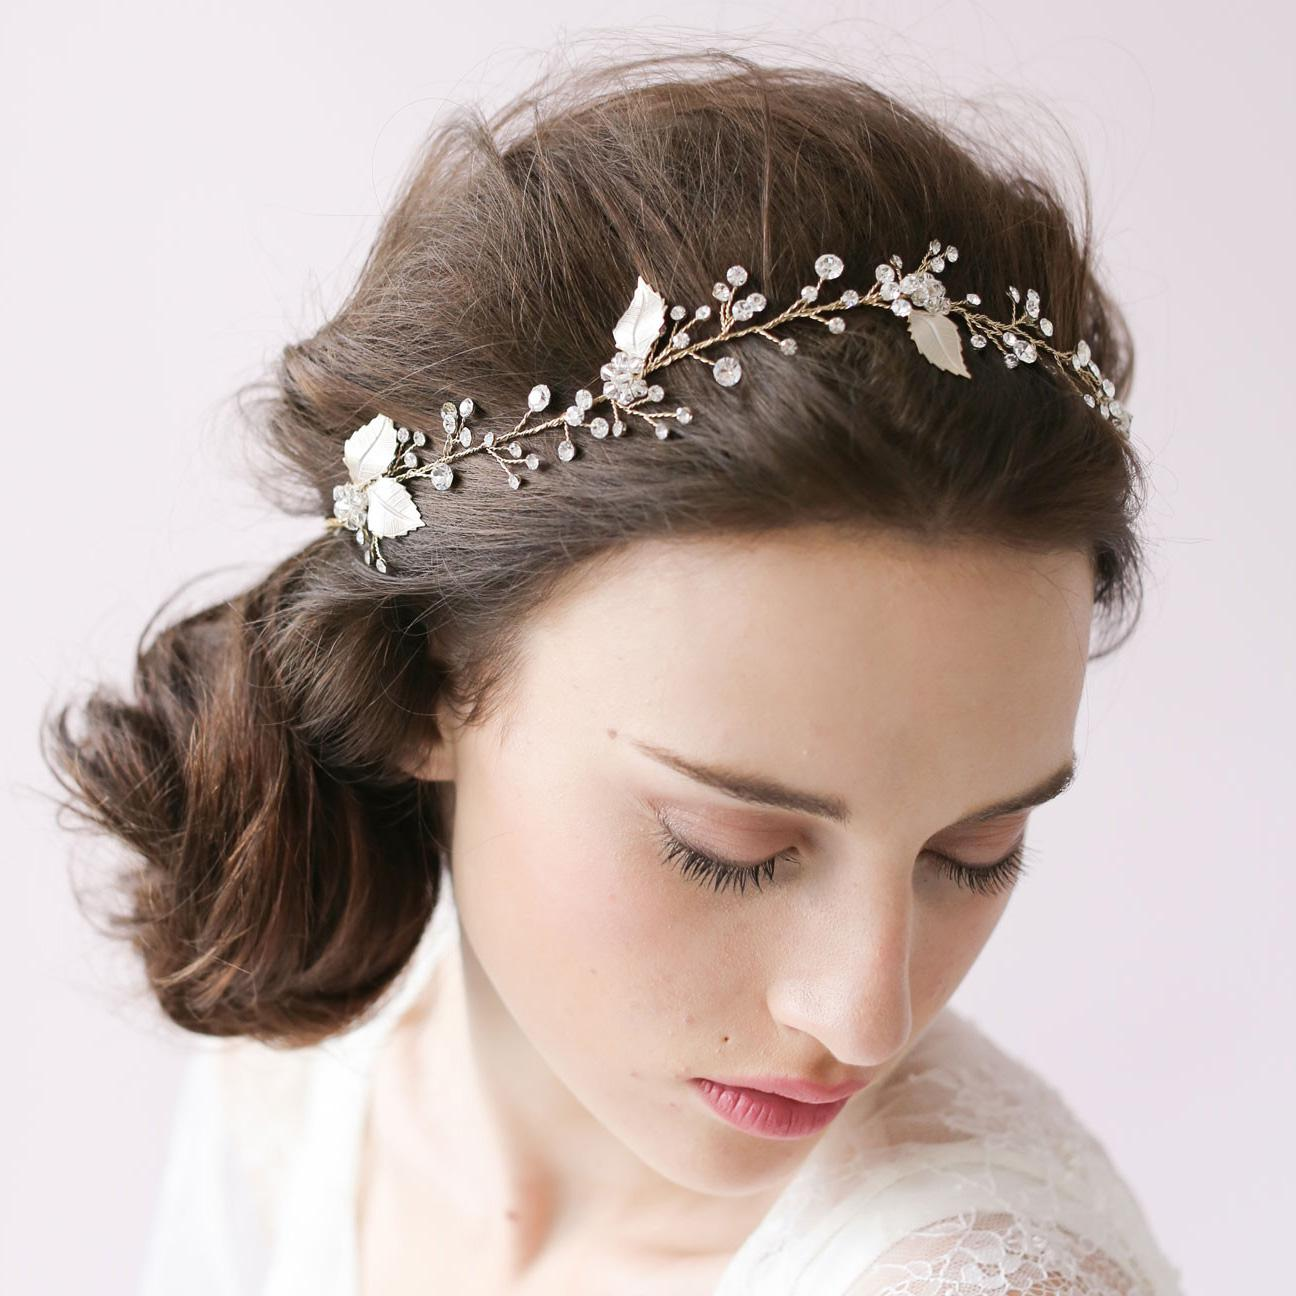 Free shipping on hair accessories for women at hereaupy06.gq Shop headbands, head Beauty Sleep · Designer CollectionsBrands: Jenny Yoo, Nouvelle Amsale, Jill Stuart, JS Collections.